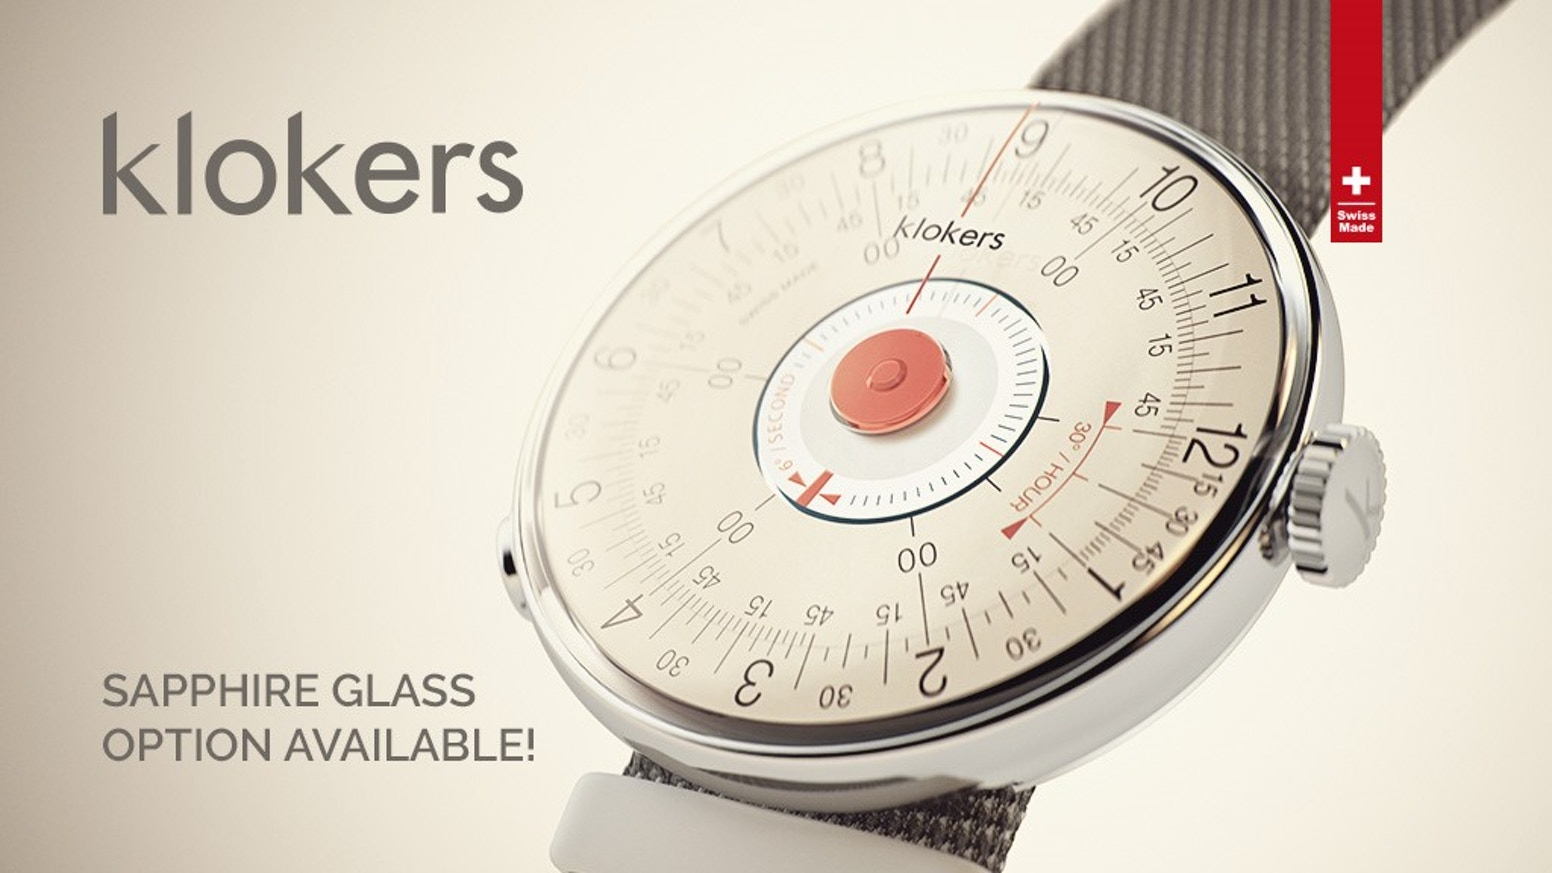 - Swiss Made & innovative watches at affordable prices - Universe of interchangeable products - Exclusive offers & numbered editions